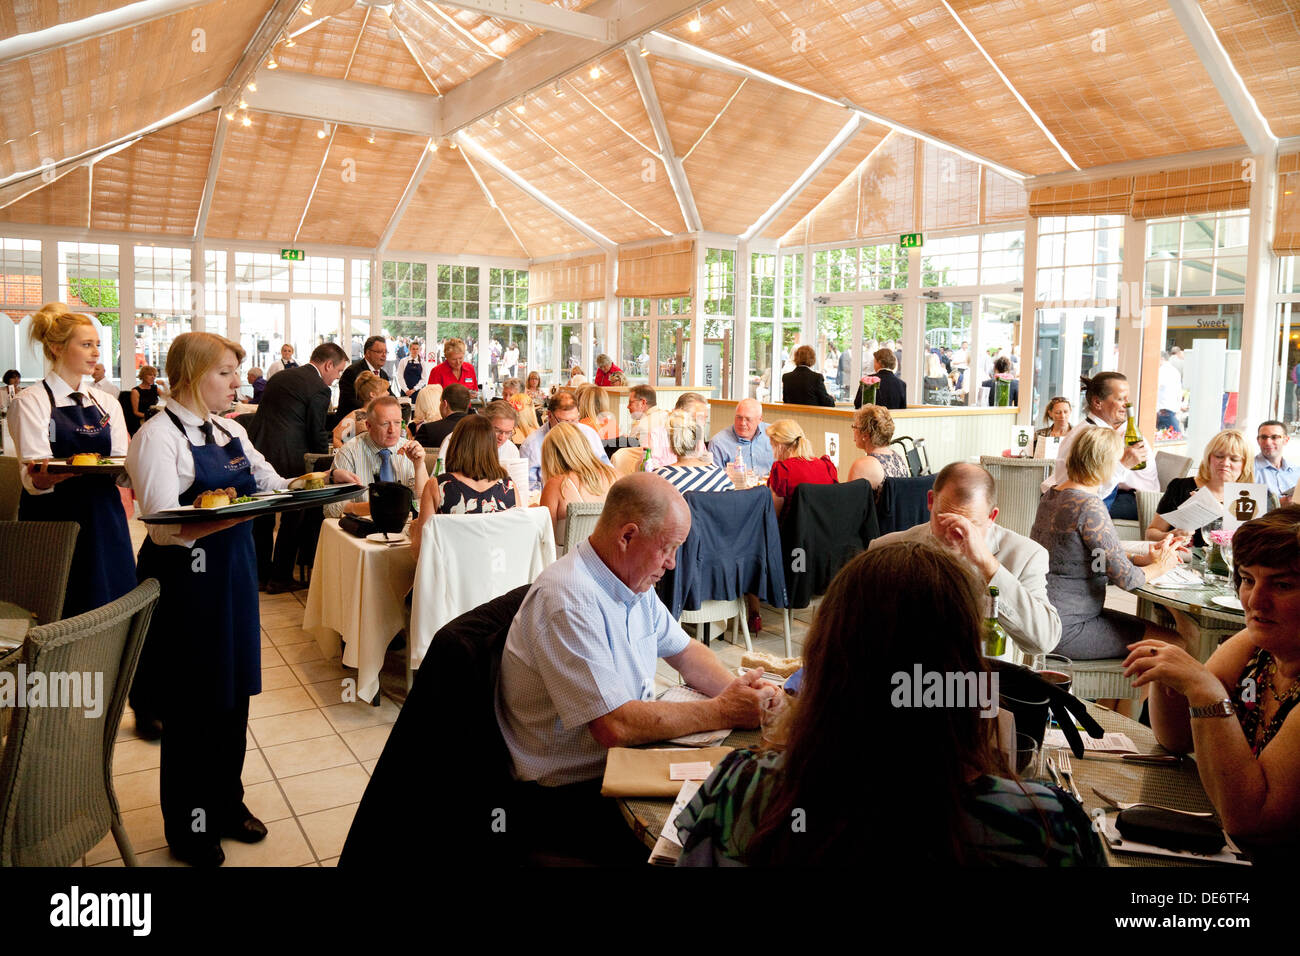 People eating in the Summerhouse restaurant, the Premier Enclosure,  the July Racecourse  Newmarket Suffolk UK - Stock Image